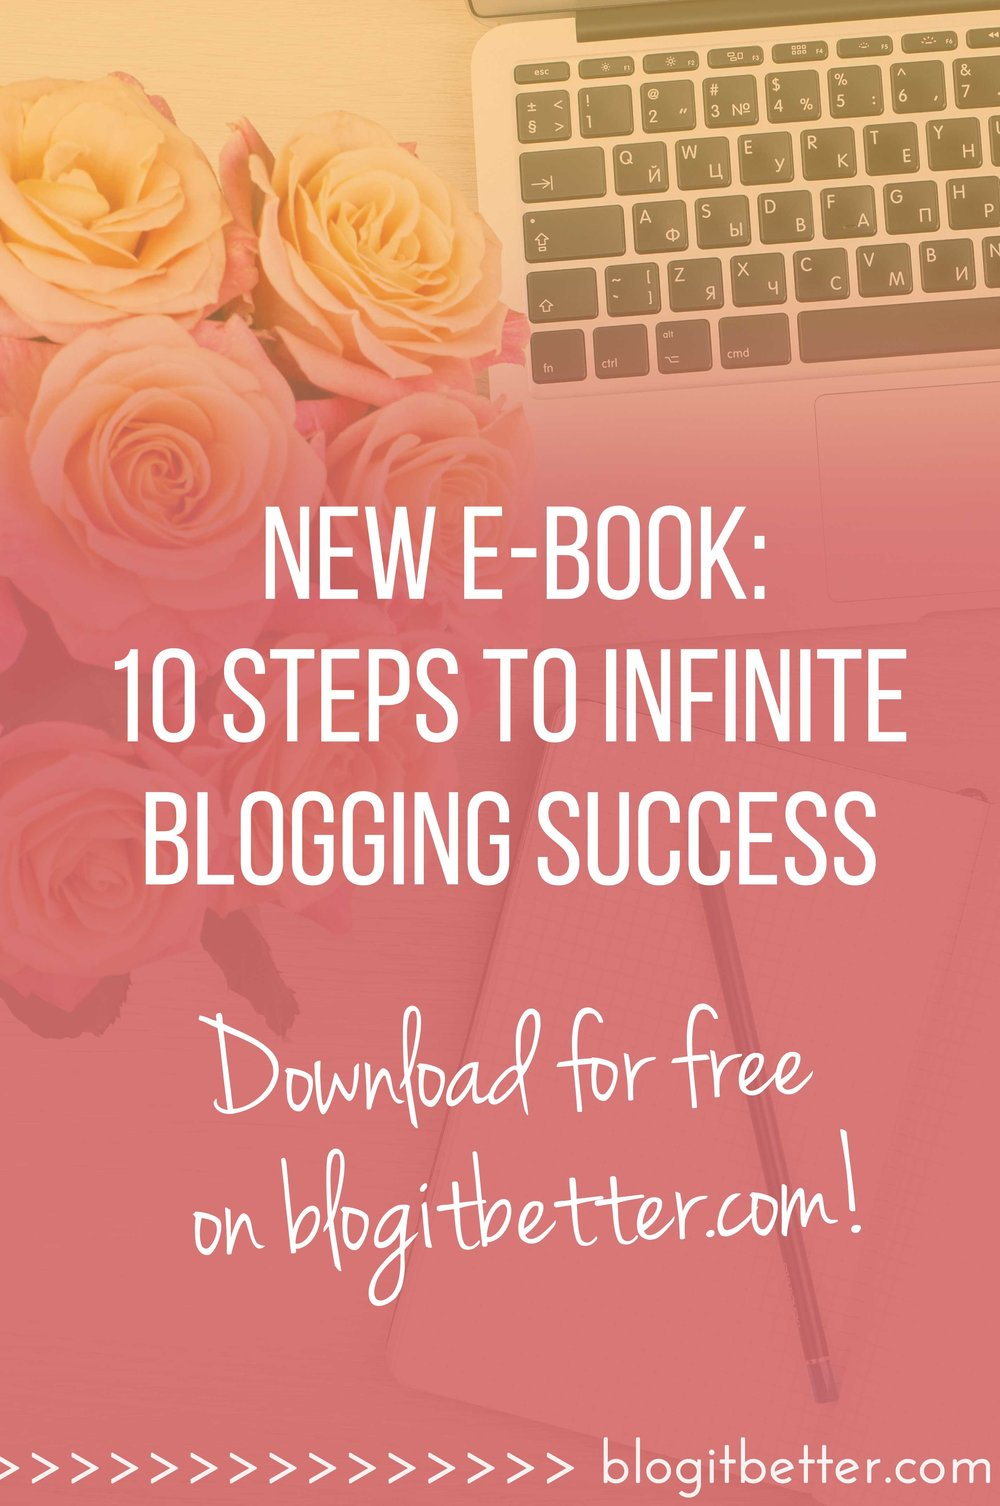 10 valuable insights into blogging, for bloggers who want to increase their influence and grow their following! Fee e-book download